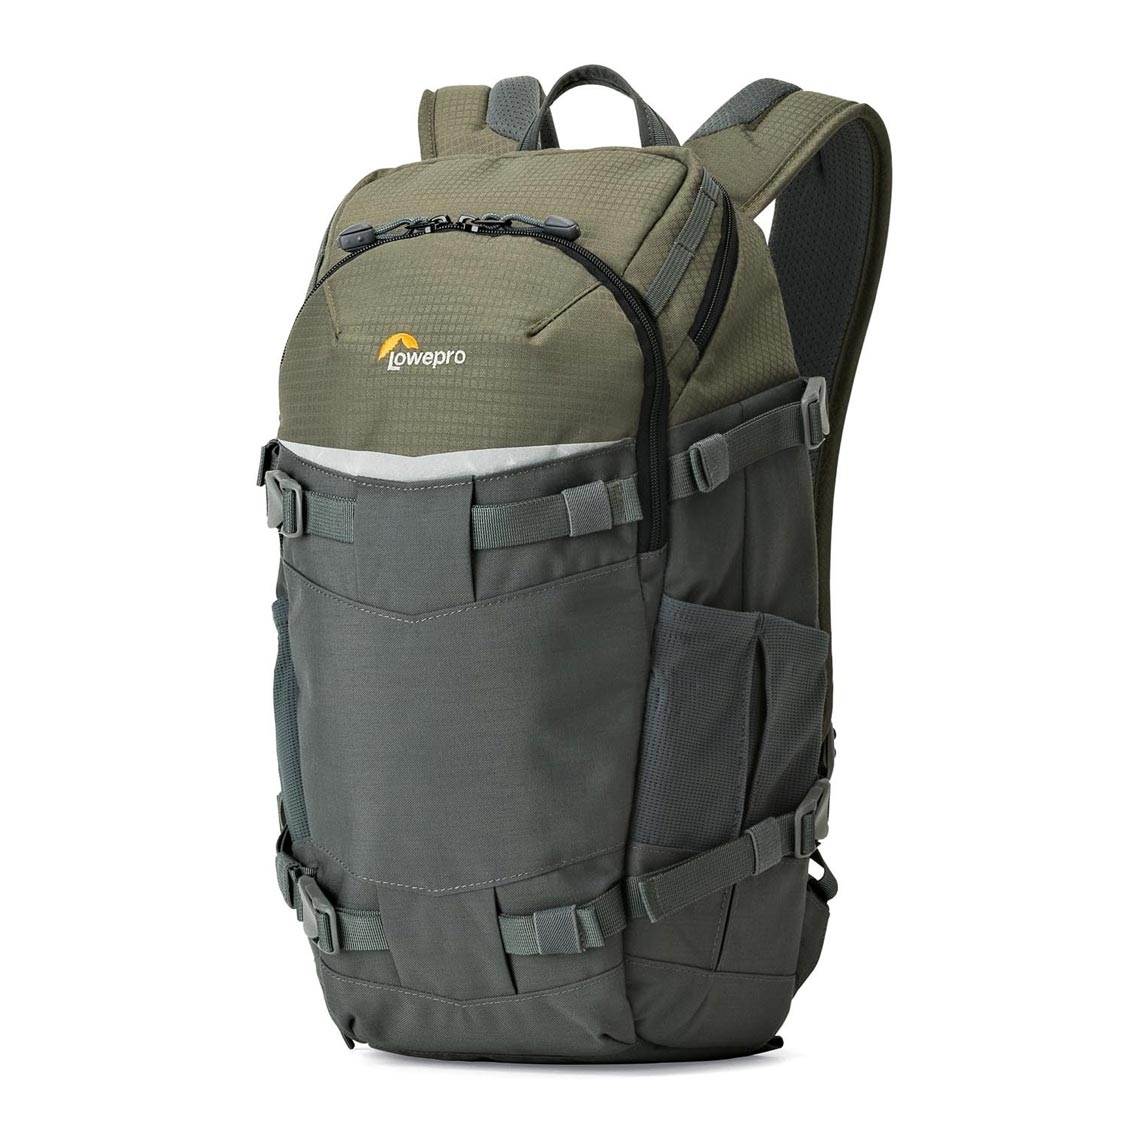 Lowepro Flipside Trek 250 AW Backpack